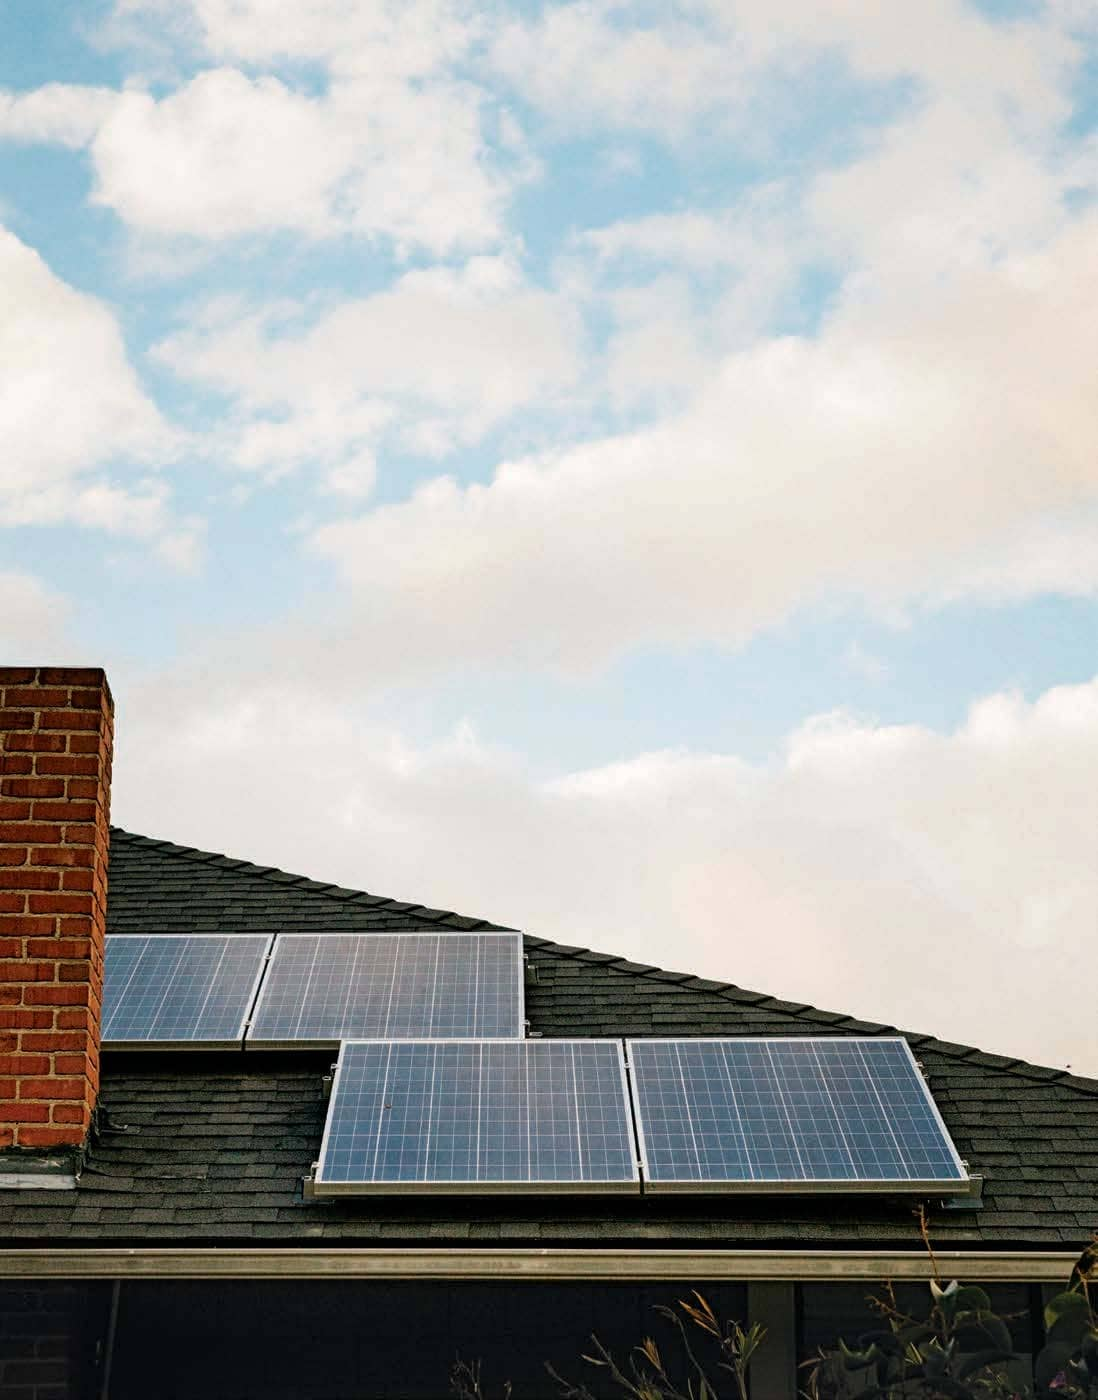 Rooftop Solar- There's A Catch